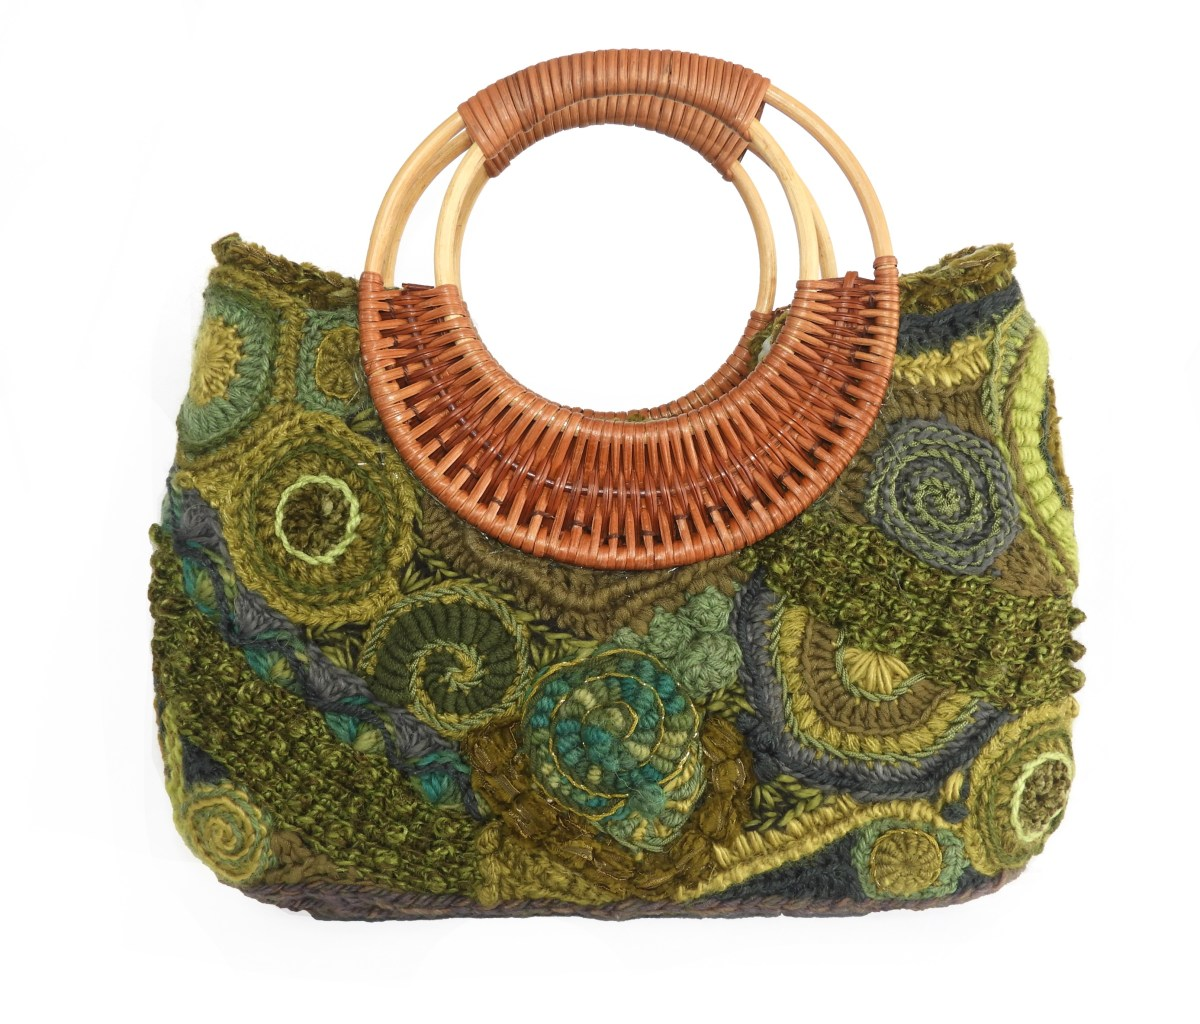 Freeform Crochet Handbags.